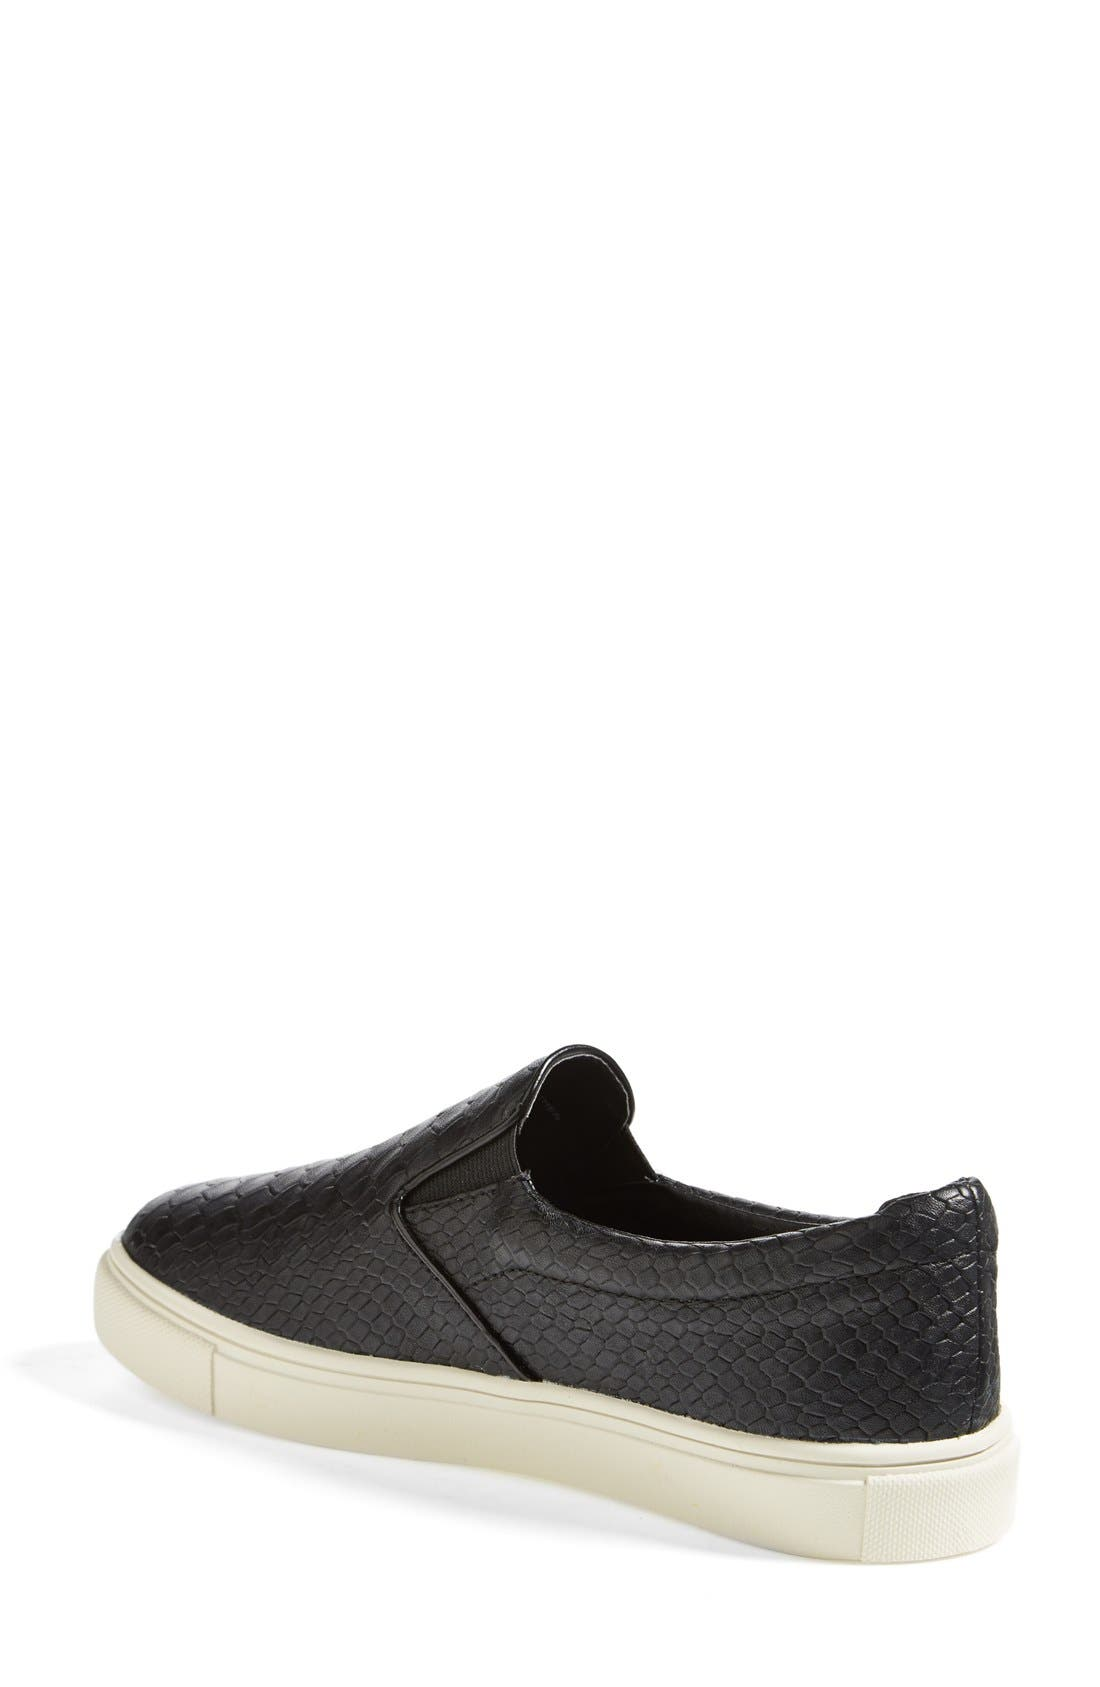 Alternate Image 2  - Steve Madden 'Ecntrc-c' Snake-Embossed Slip-On Sneaker (Women)